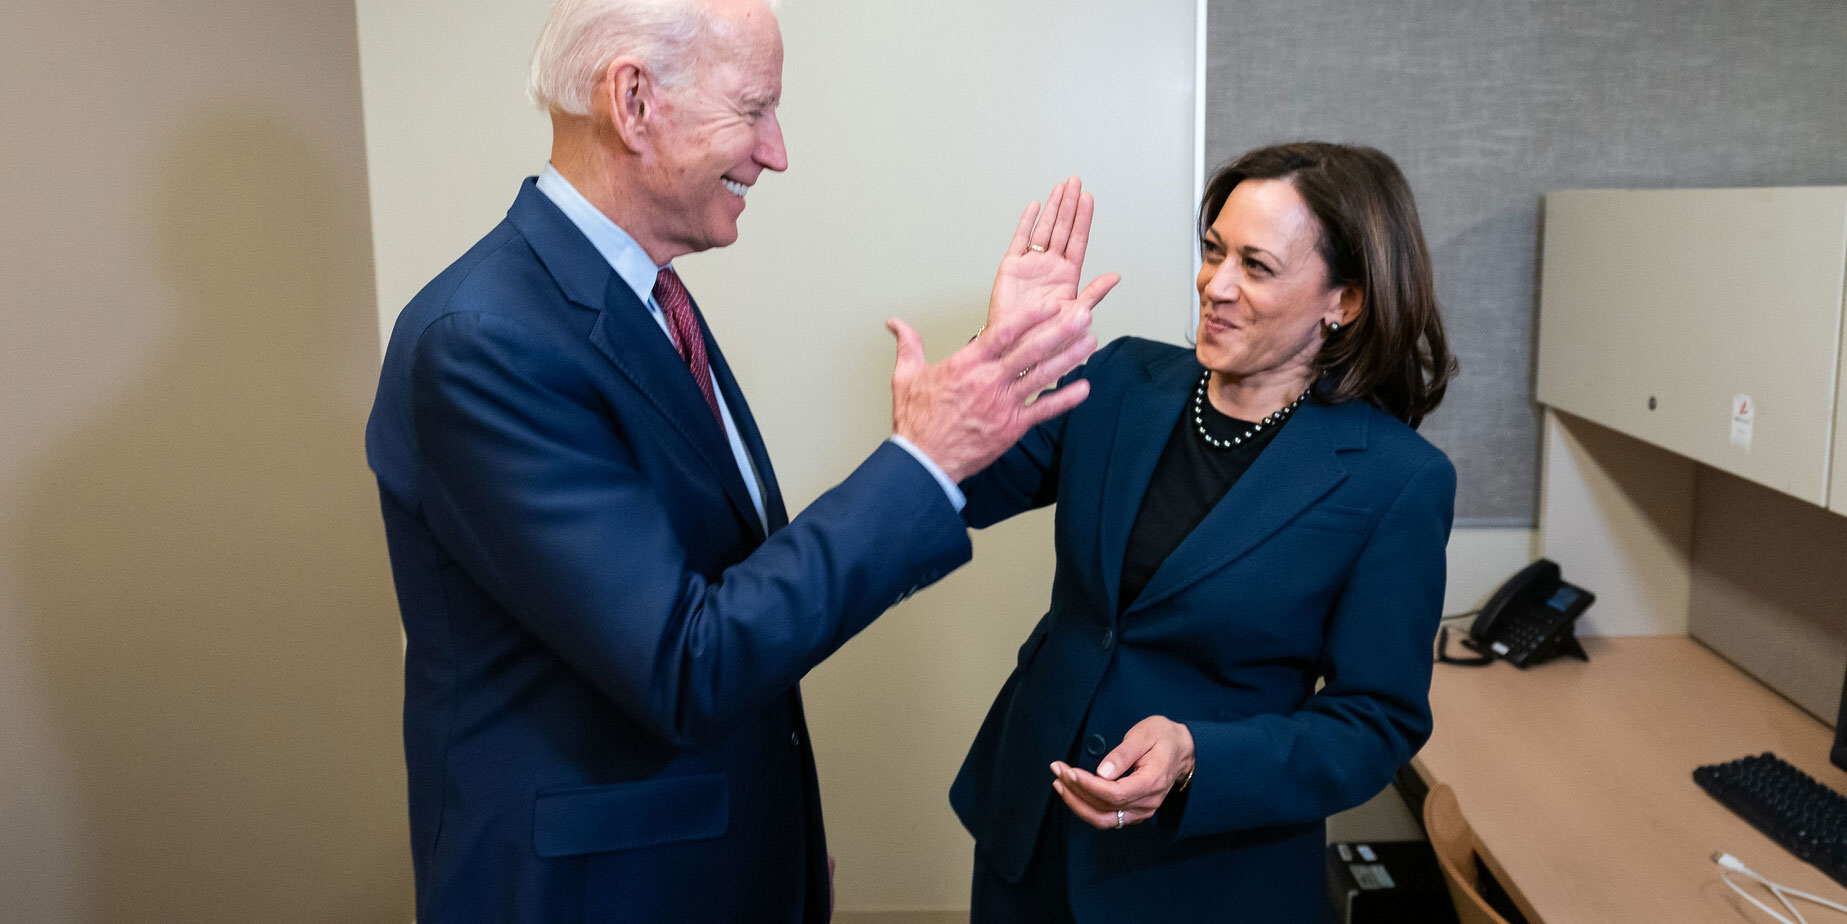 Joe Biden and Kamala Harris will face incumbents Donald Trump and Mike Pence this November. (Biden-Harris campaign)